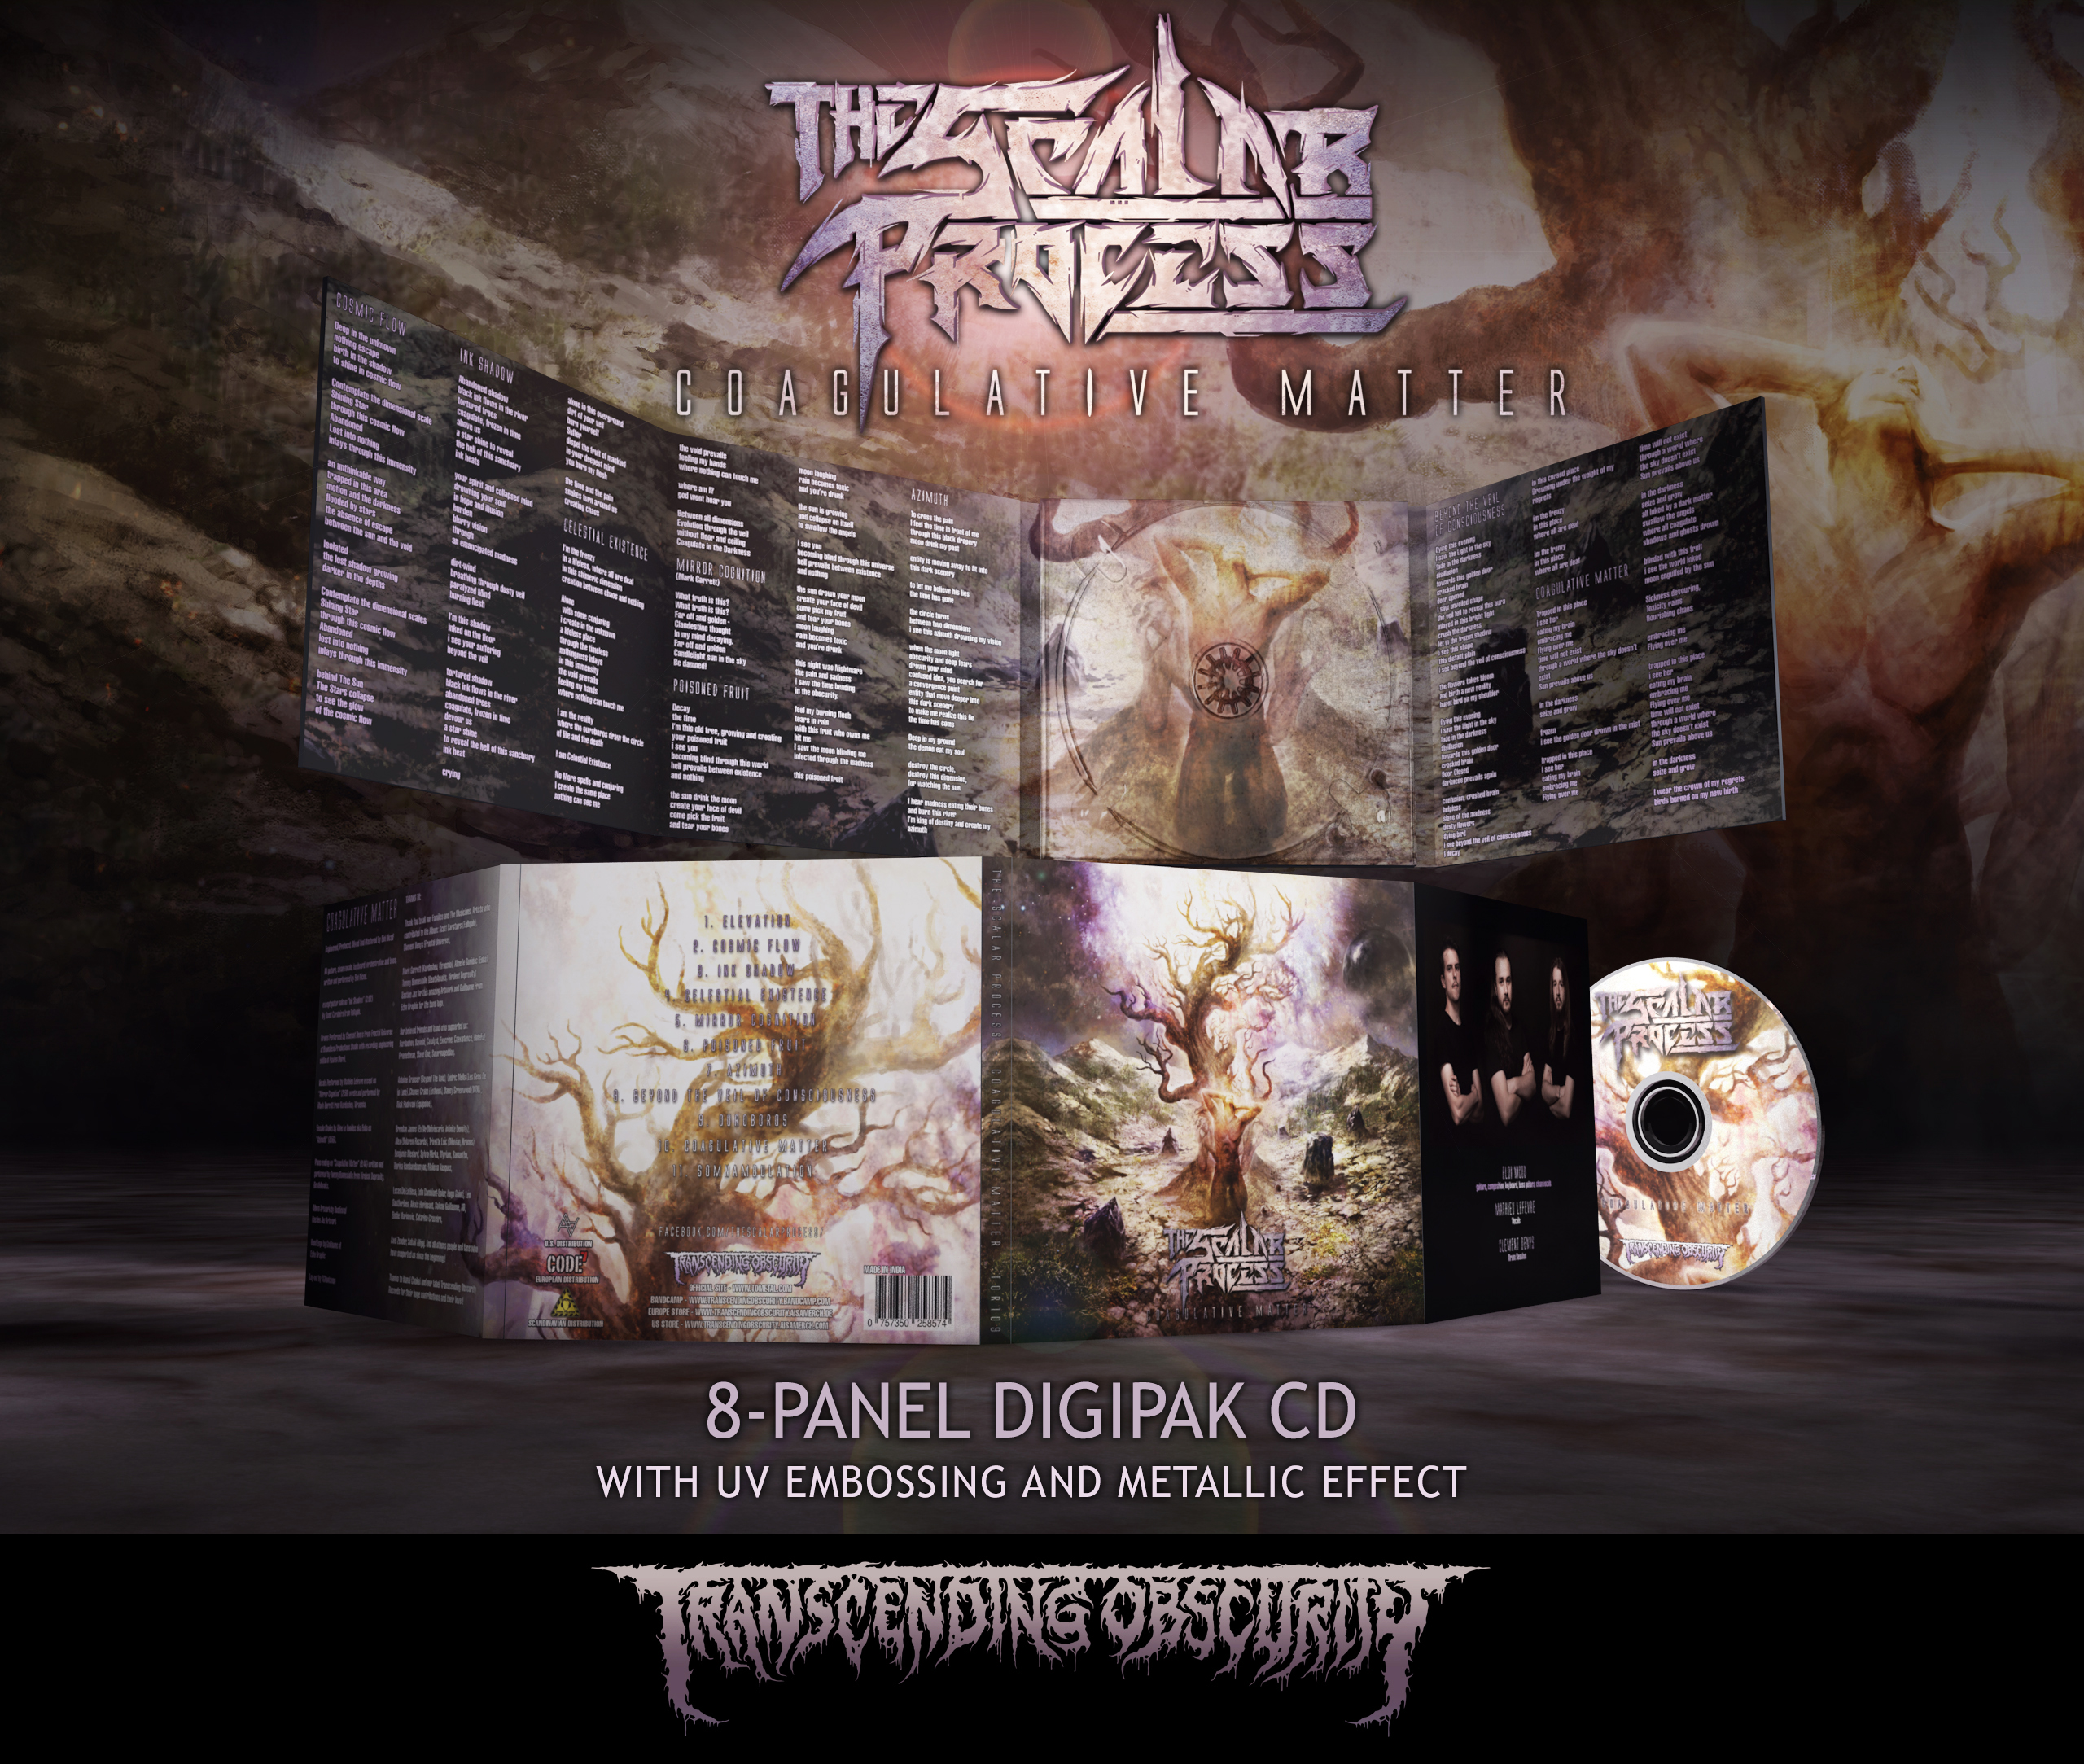 The Scalar Process - Coagulative Matter 8-Panel Digipak CD